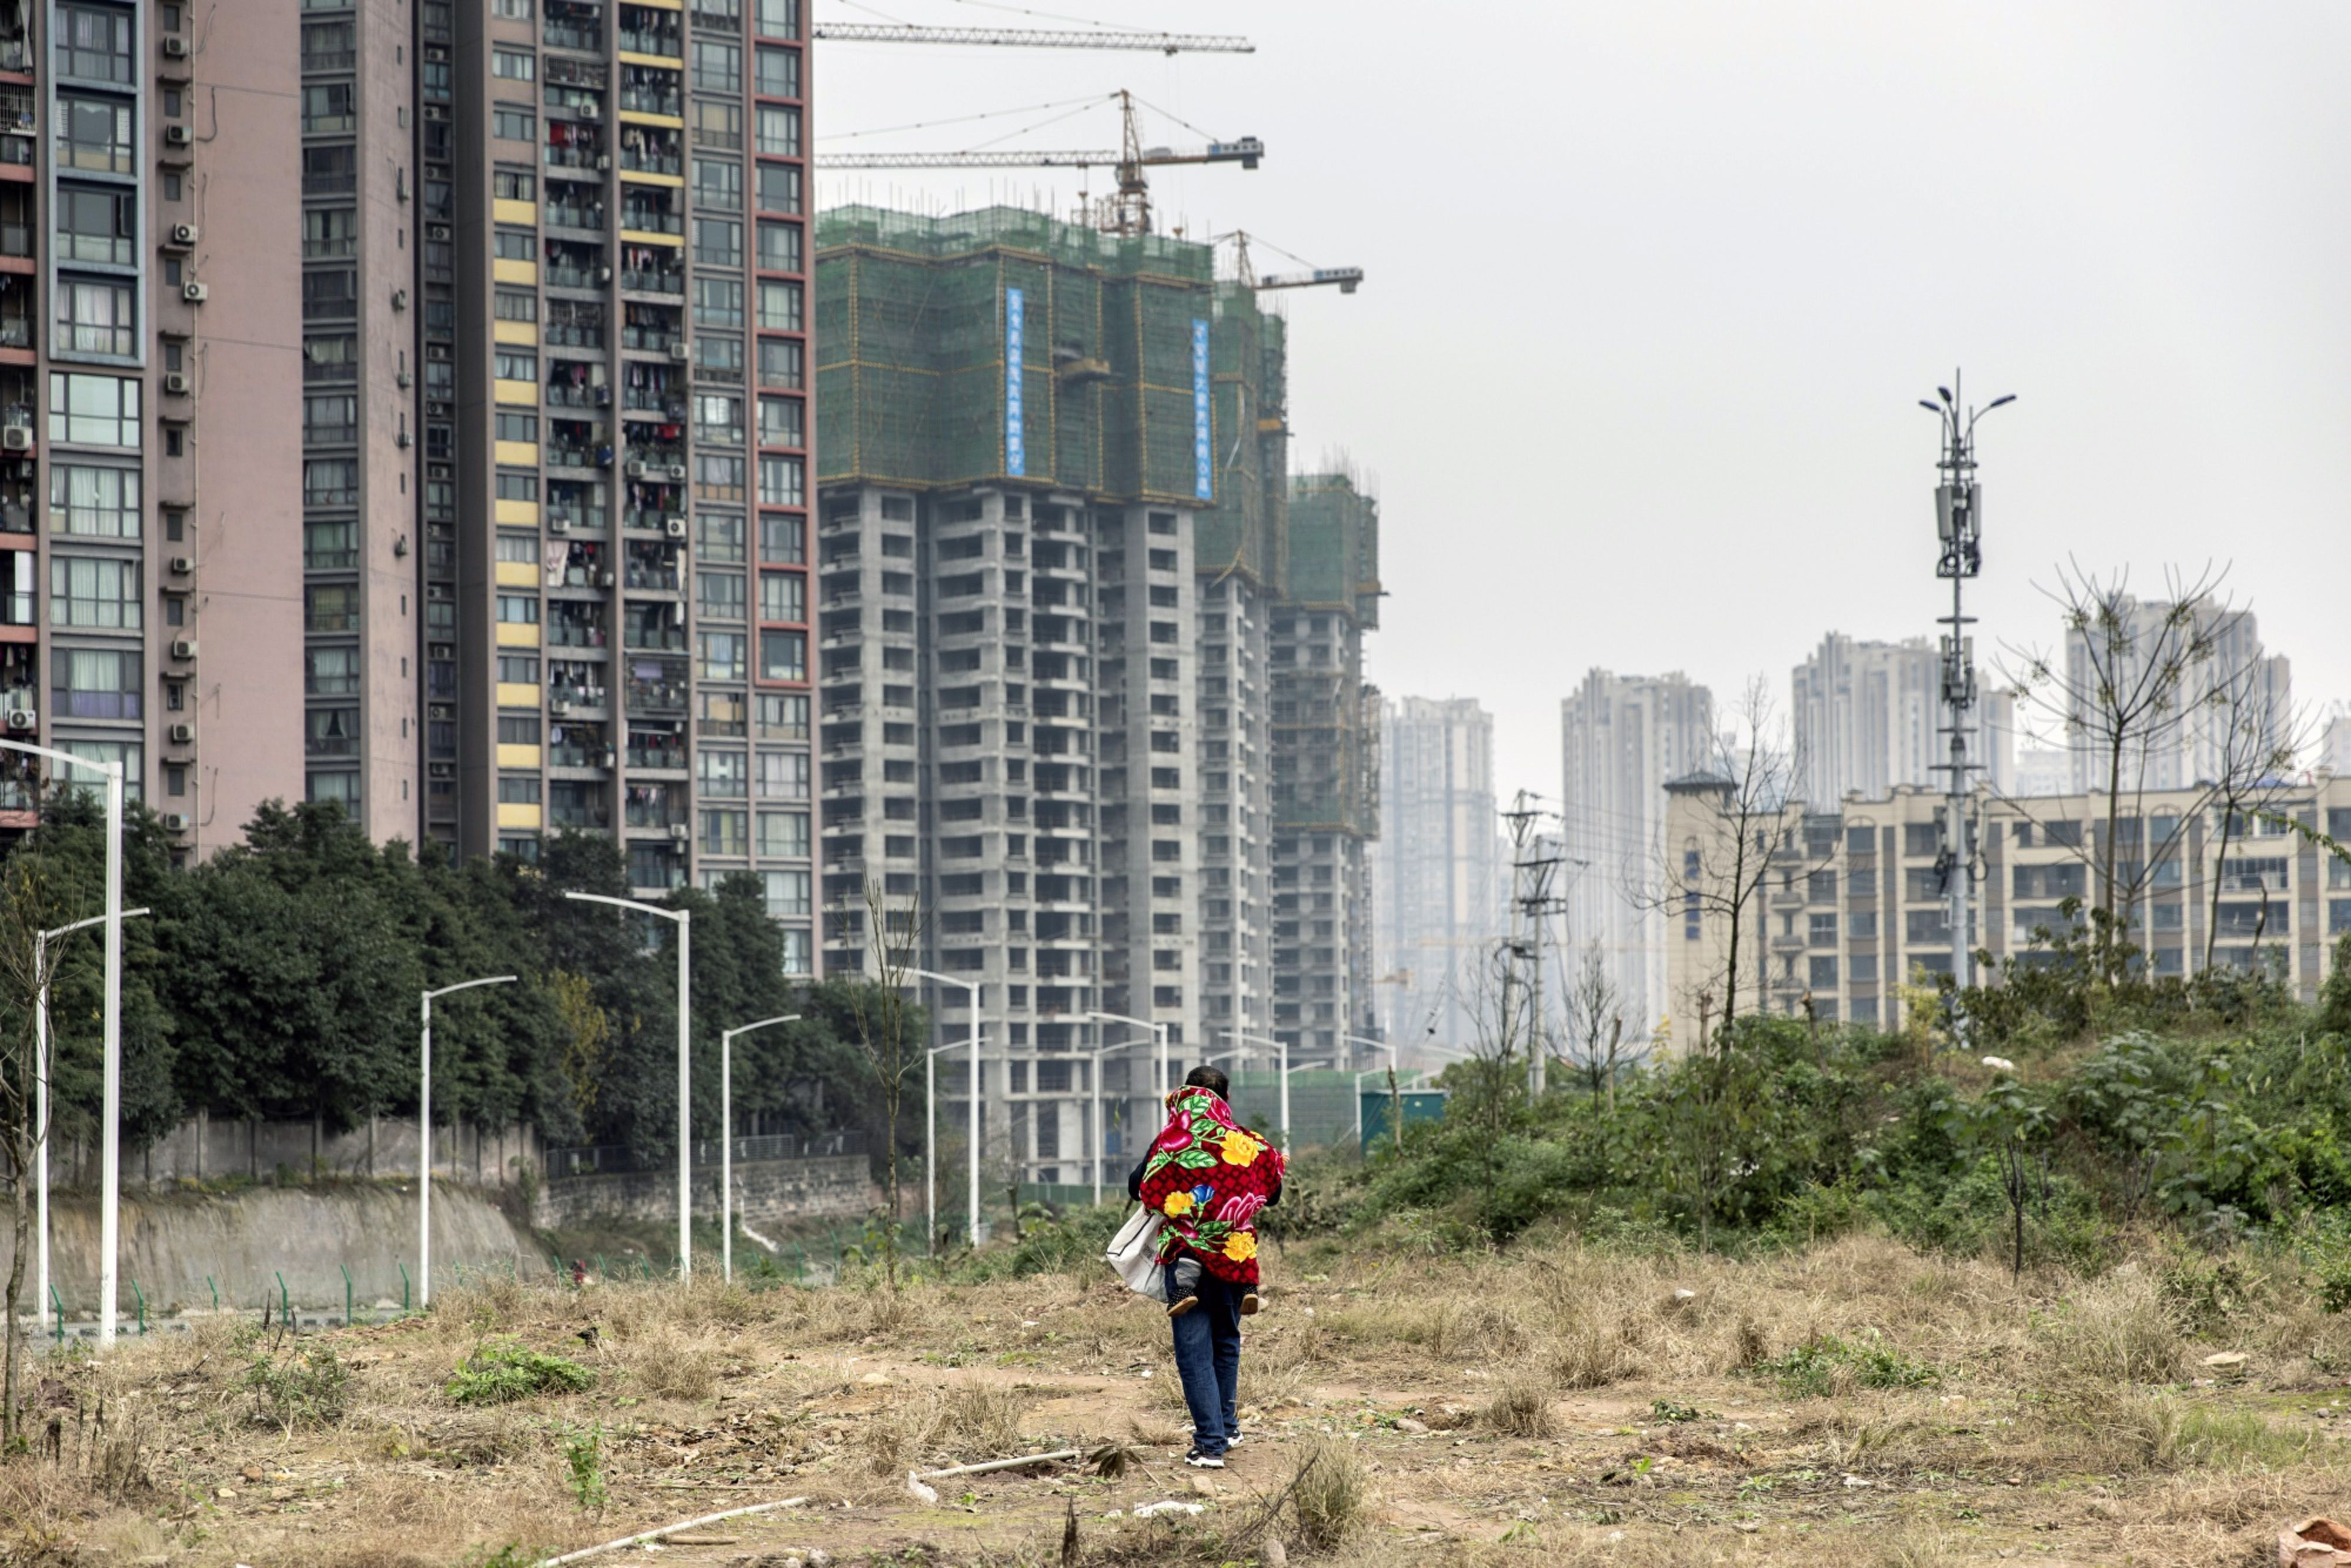 A man carrying a child on his back walks on a field near new housing developments on the outskirts of Chongqing, China,